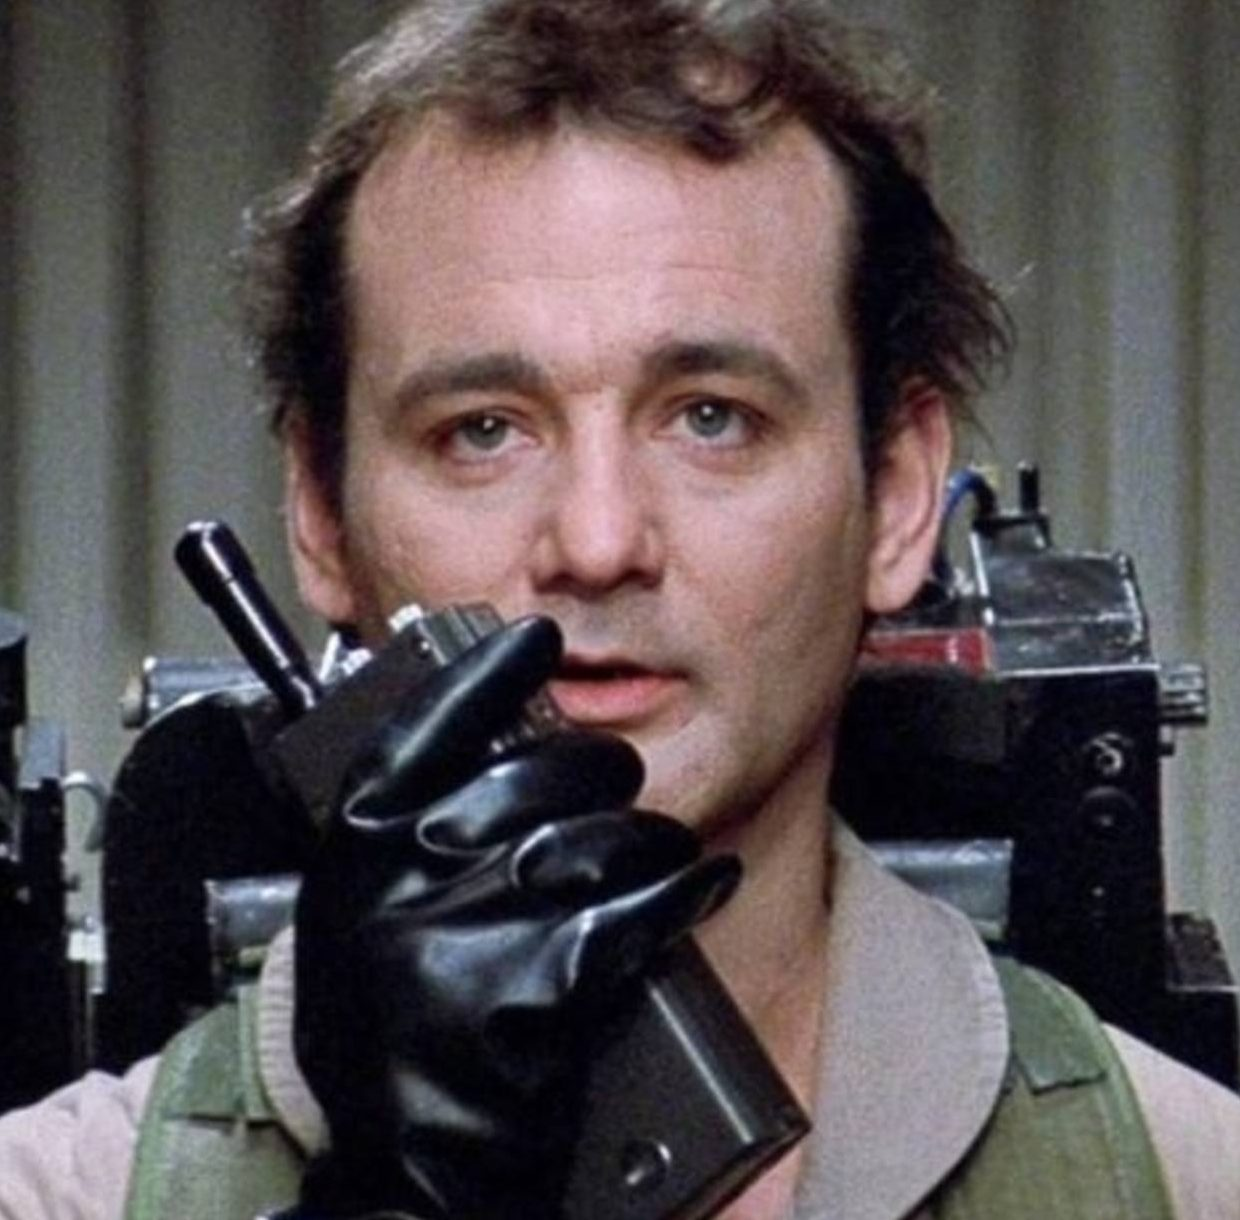 Webp.net resizeimage 2 5 1 e1600684347352 10 Things You Never Knew About Bill Murray